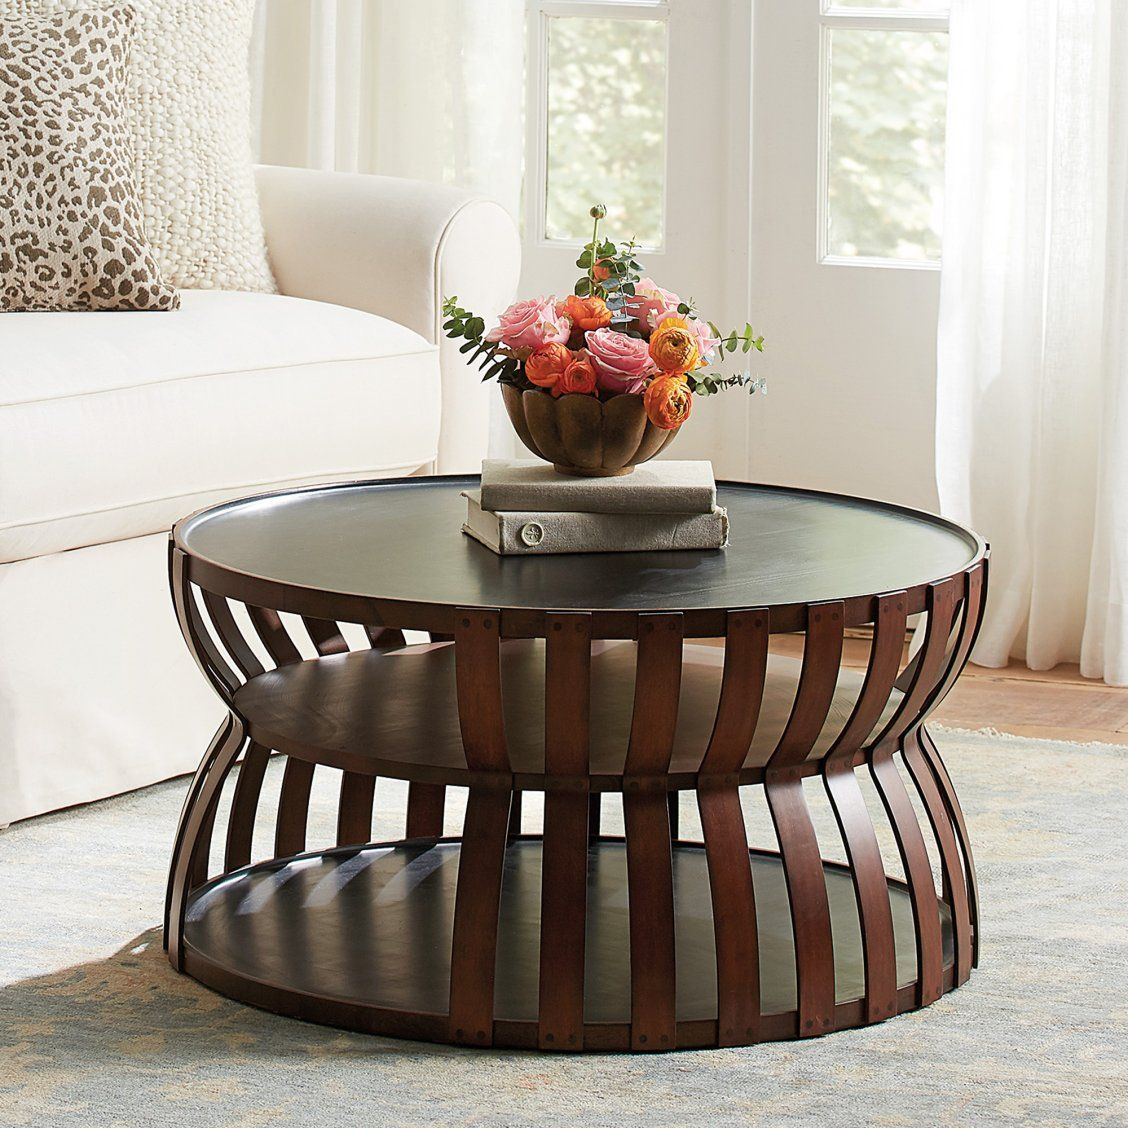 Imani Coffee Table Coffee Table Round Coffee Table Round